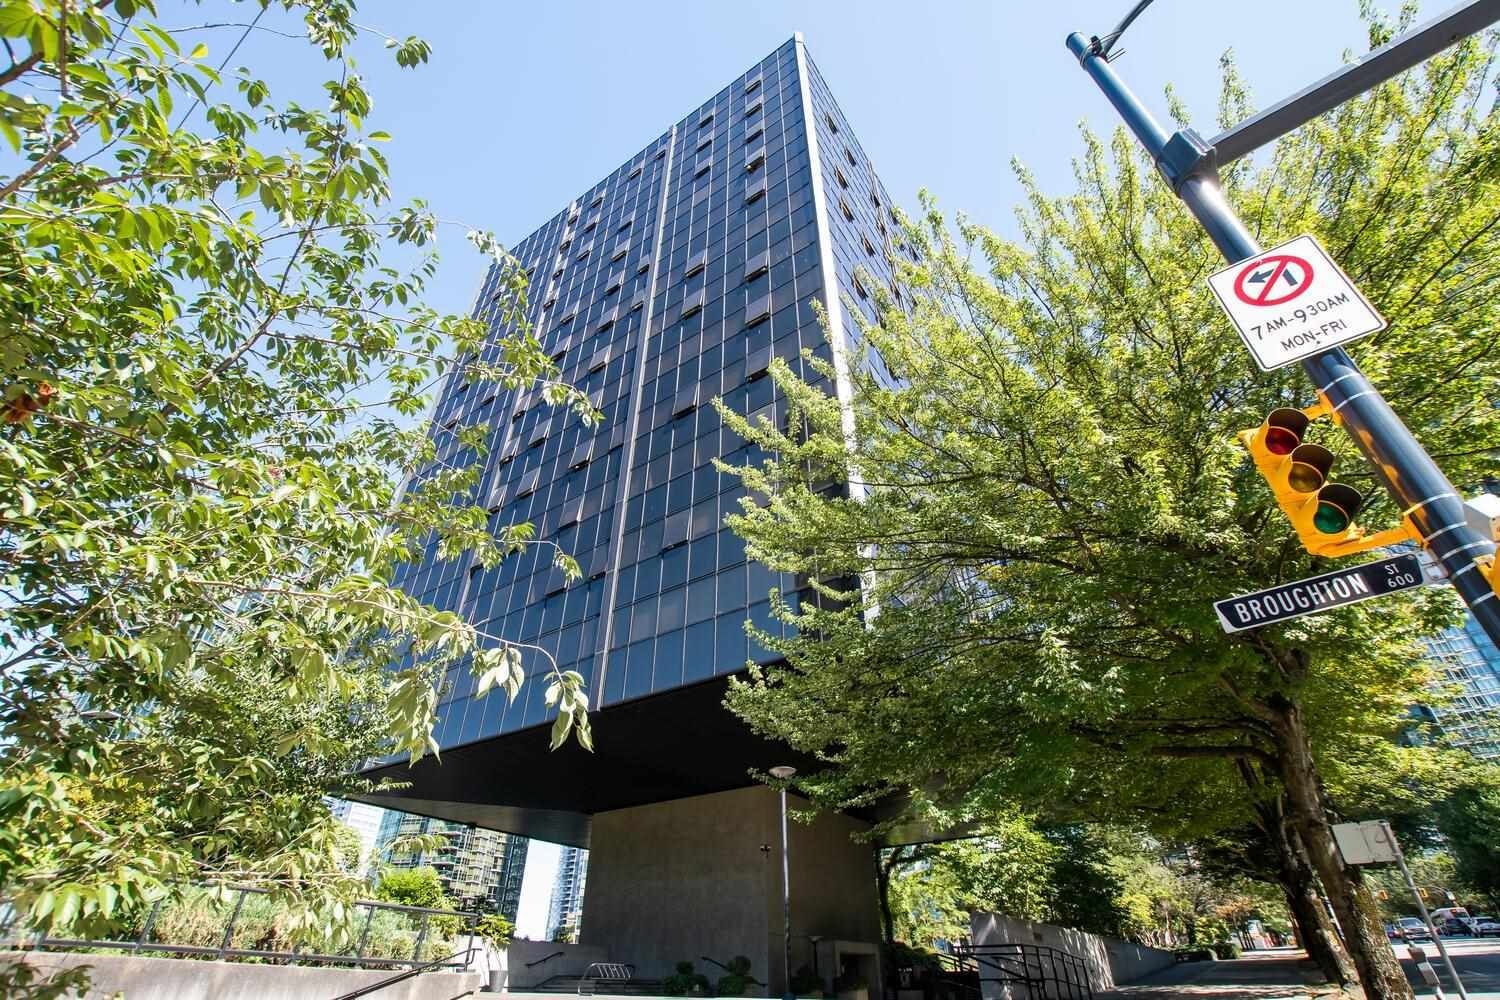 Main Photo: 1109 1333 W GEORGIA Street in Vancouver: Coal Harbour Condo for sale (Vancouver West)  : MLS®# R2603631